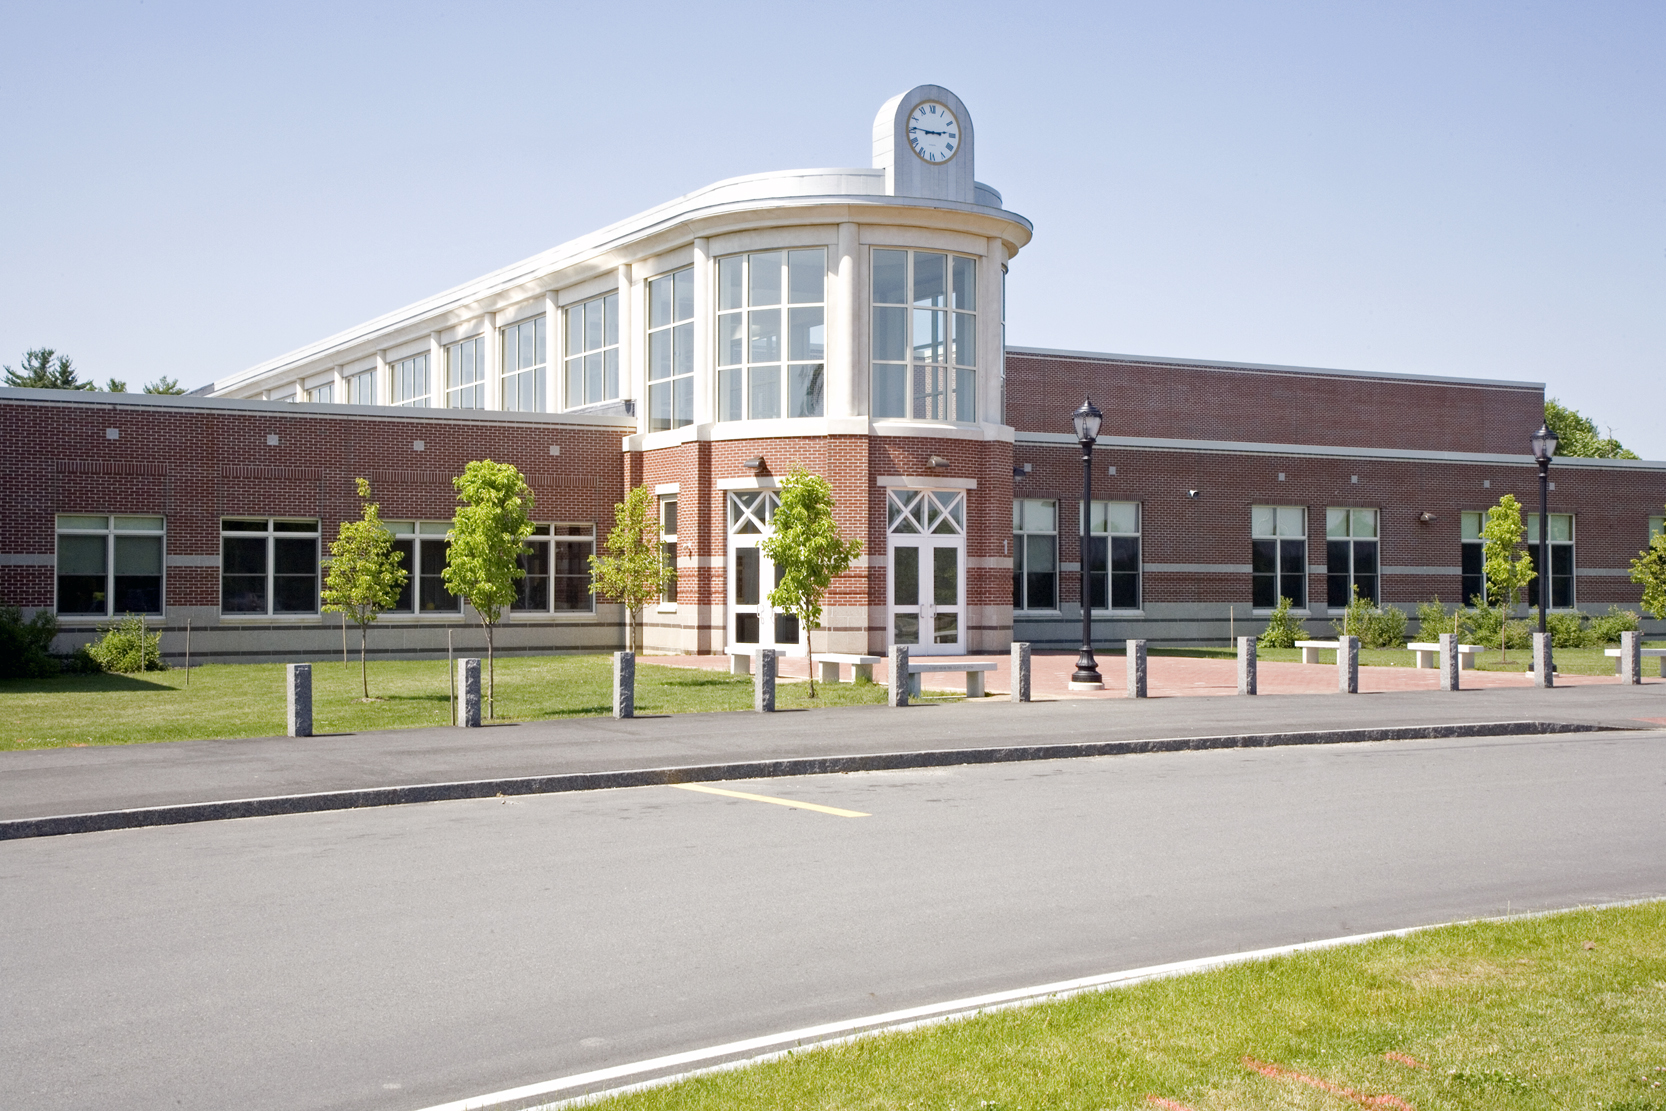 """The entry to the new Cony High School was designed to recall the original """"flatiron"""" Cony High School building, now converted to senior housing."""